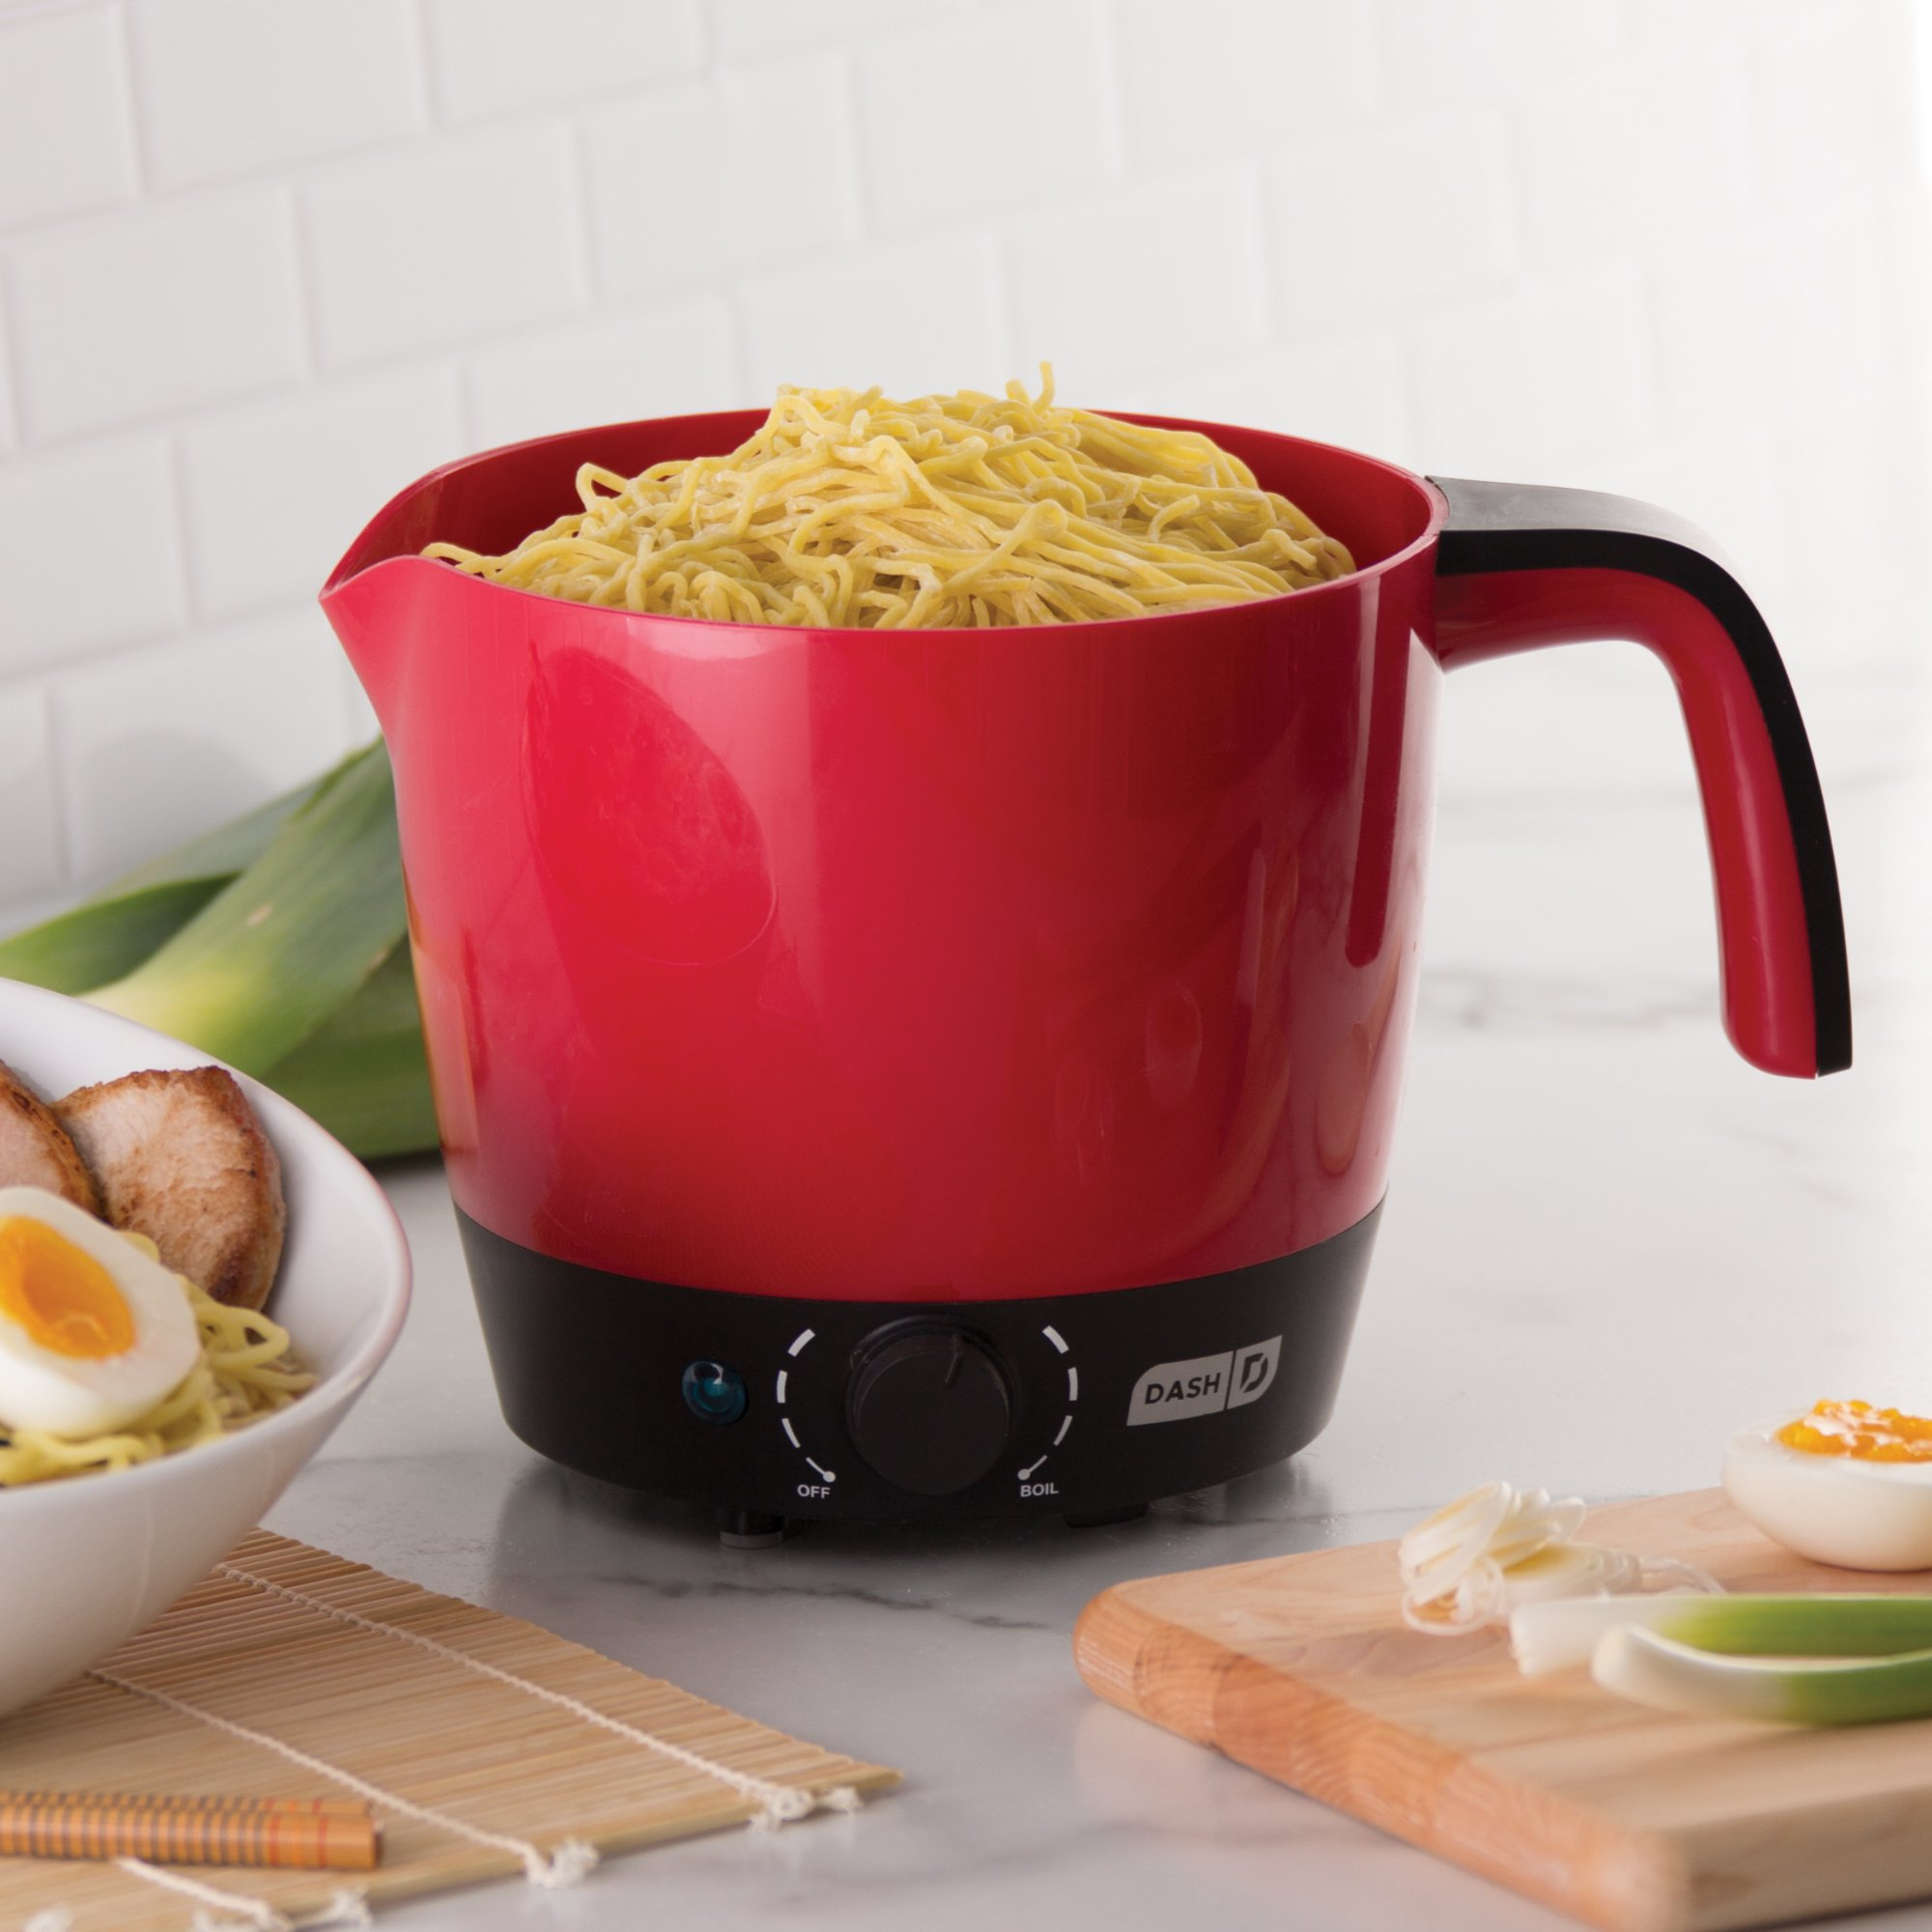 DASH DMC100RDDash Express Electric Cooker Hot Pot with Temperature Control for Noodles, Rice, Pasta, Soups, Boiling Water & More, 1.2L by DASH (Image #2)